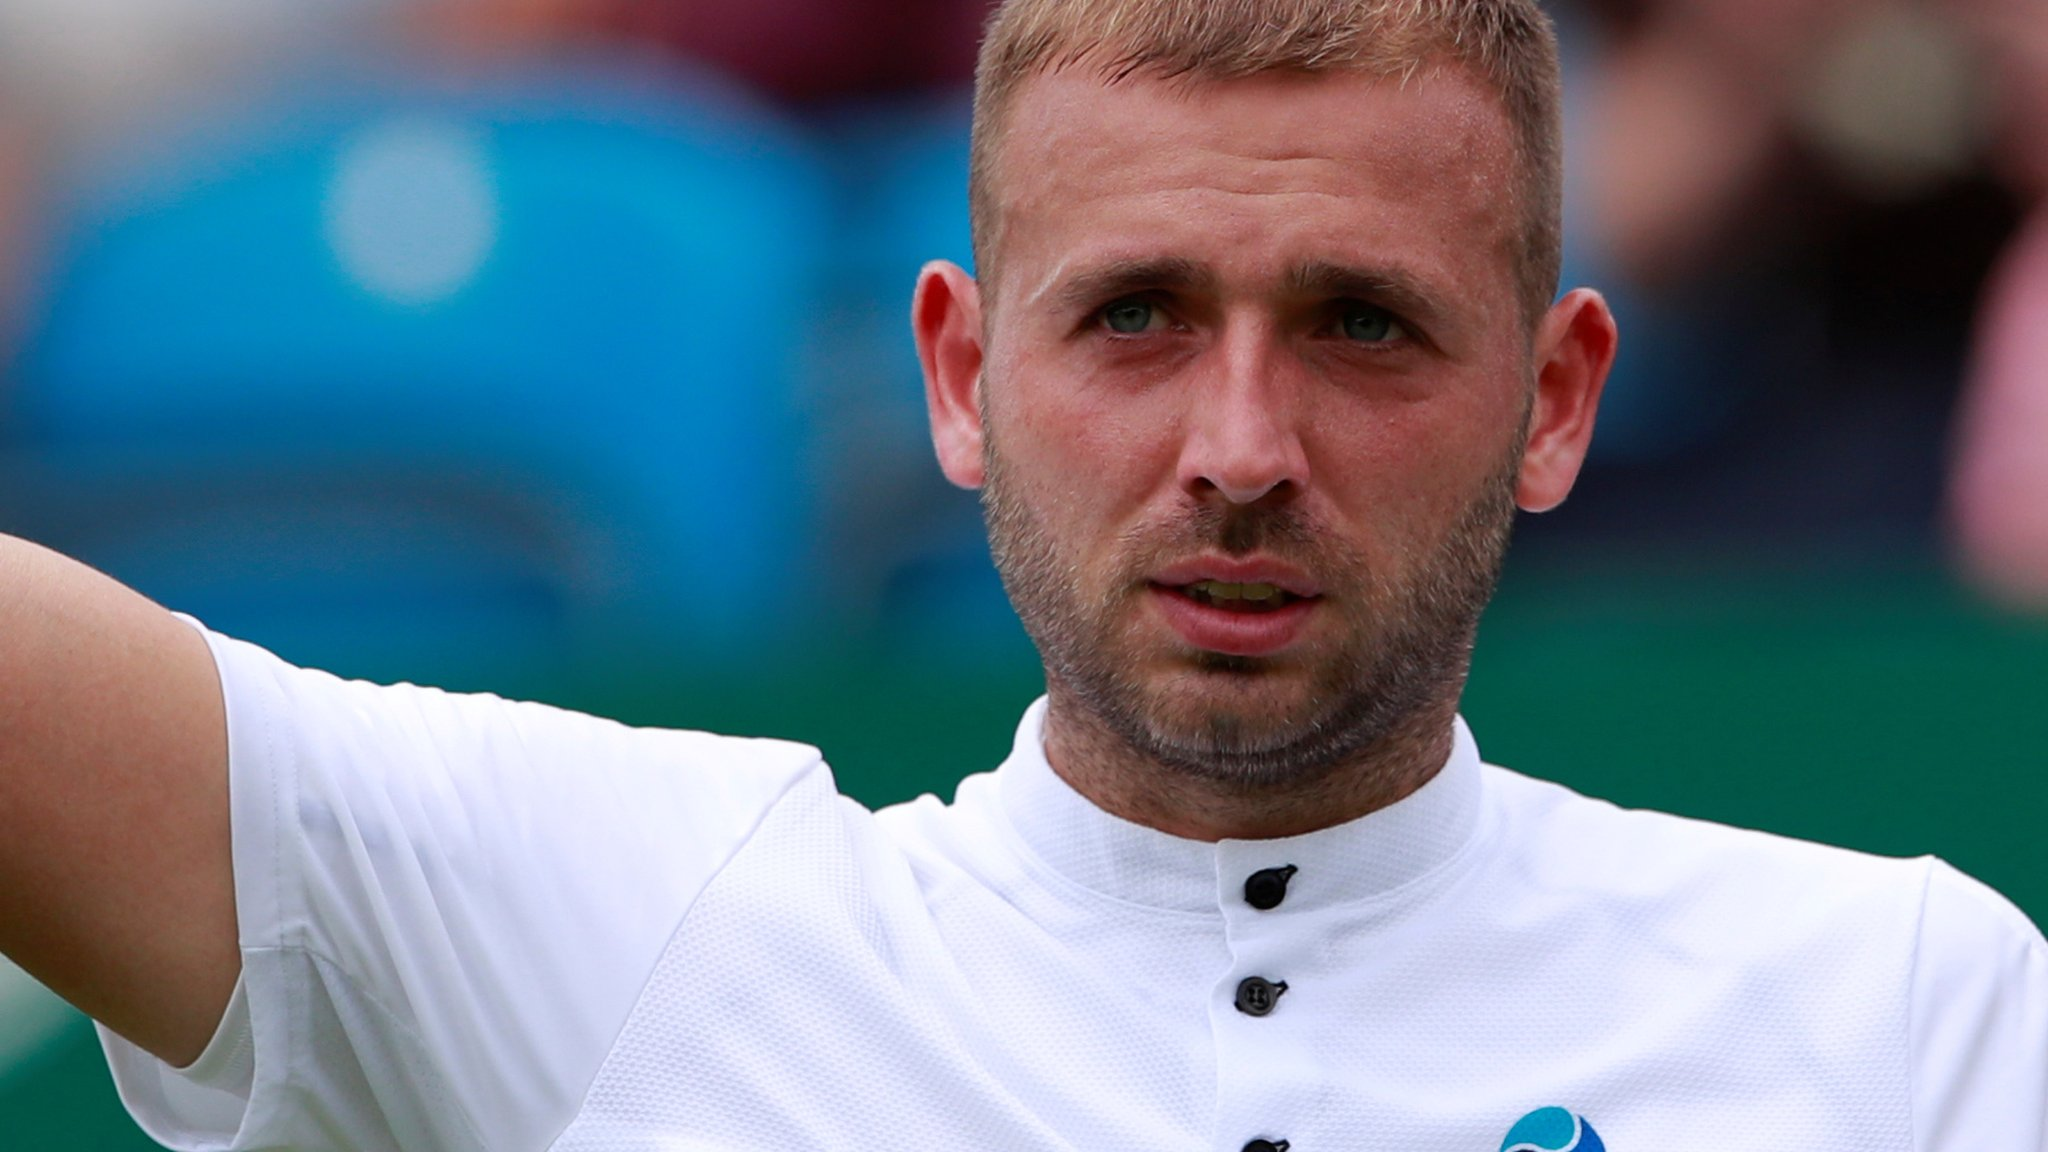 Eastbourne: Dan Evans and Cameron Norrie reach second round